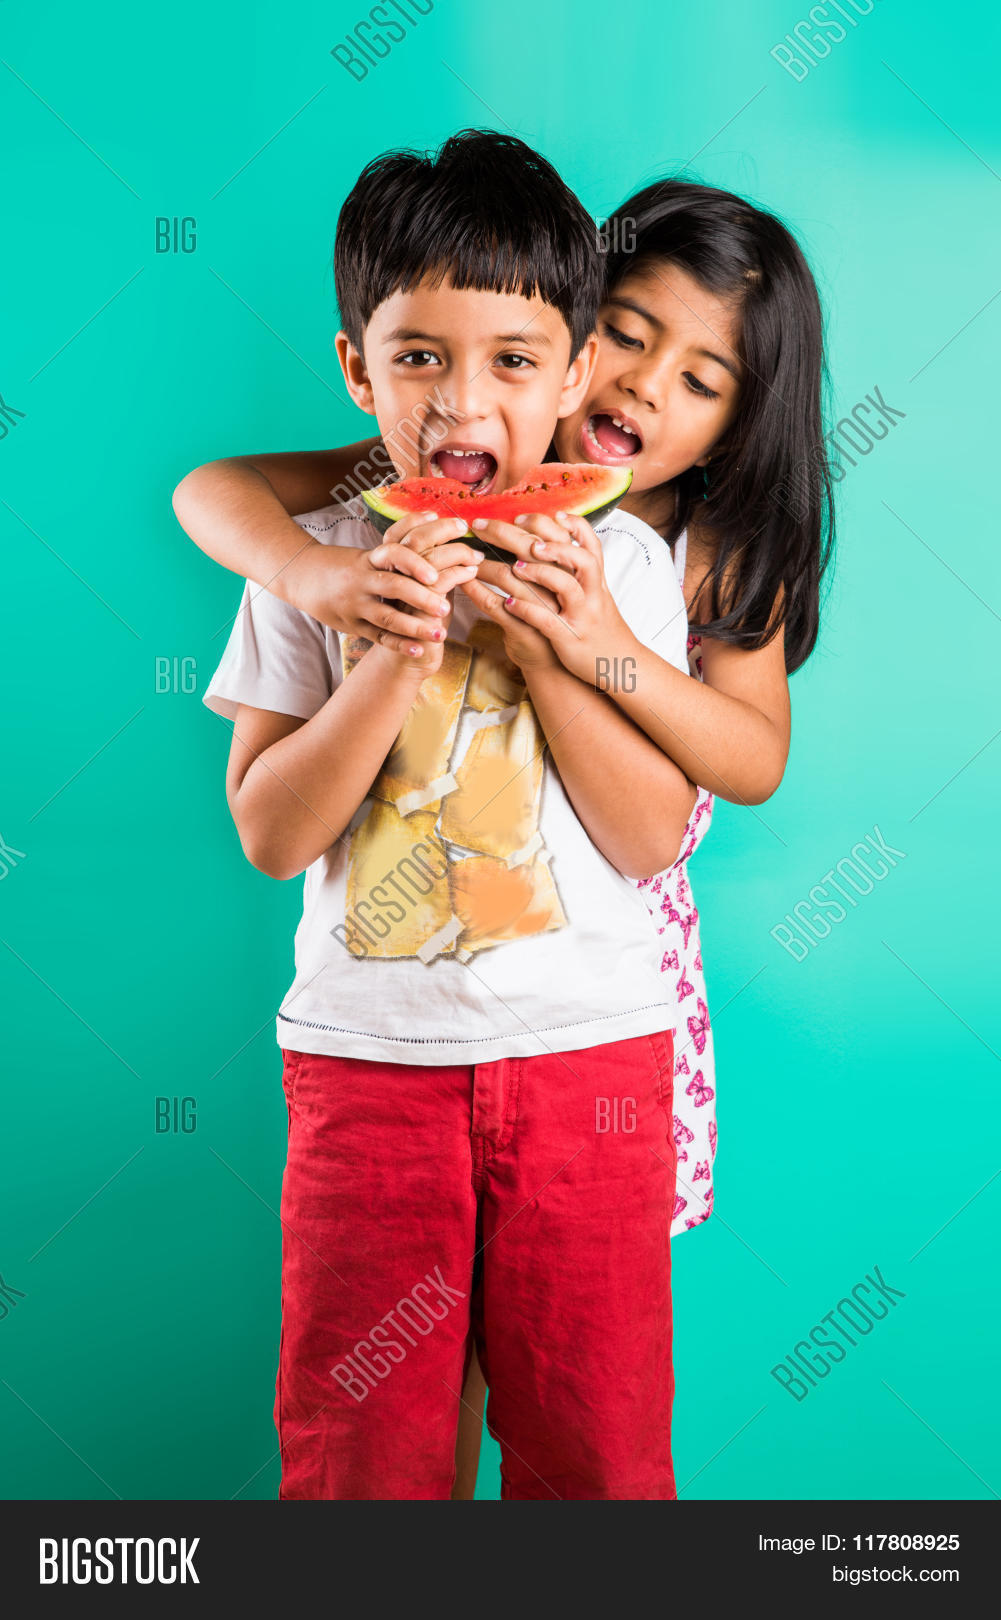 two indian kids fighting watermelon image u0026 photo bigstock